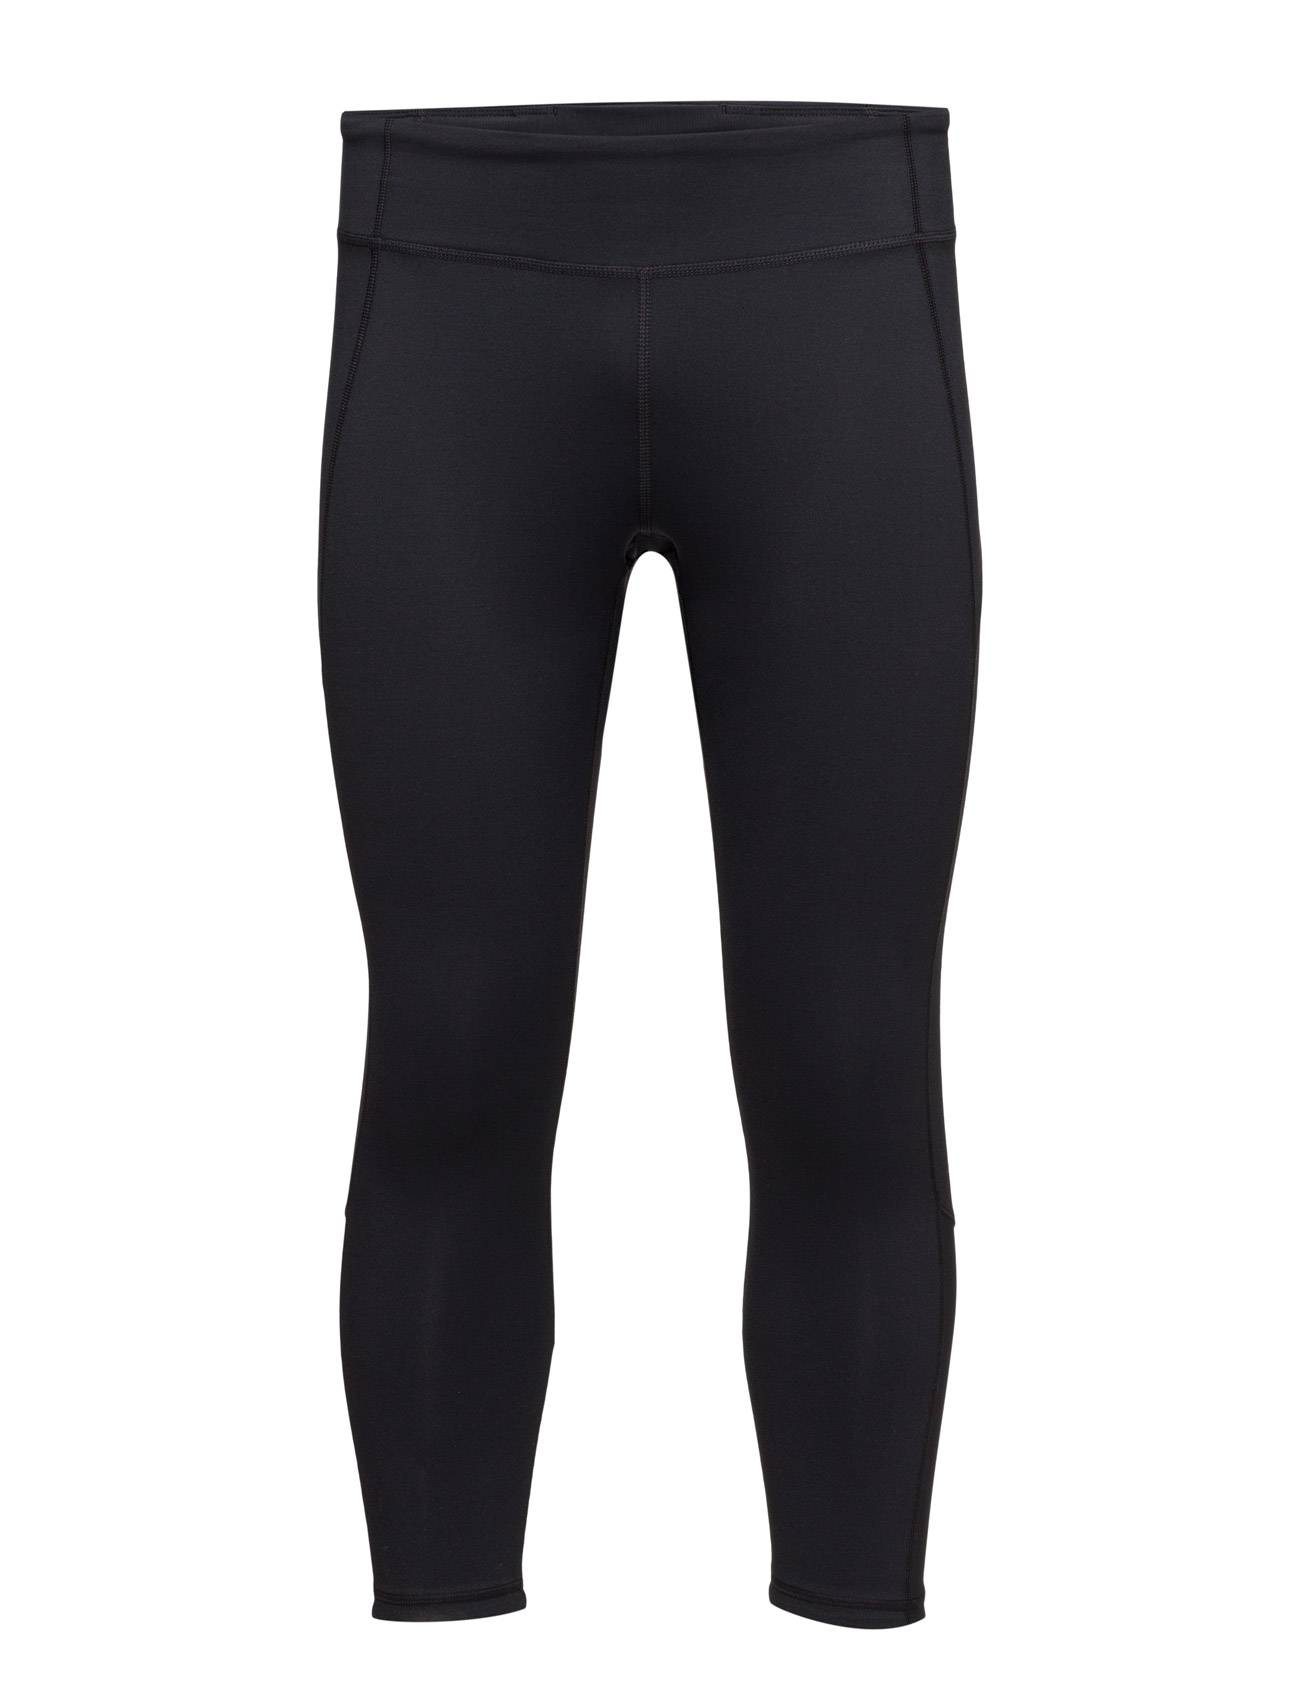 Under Armour Shapeshifter Colorblock Crop